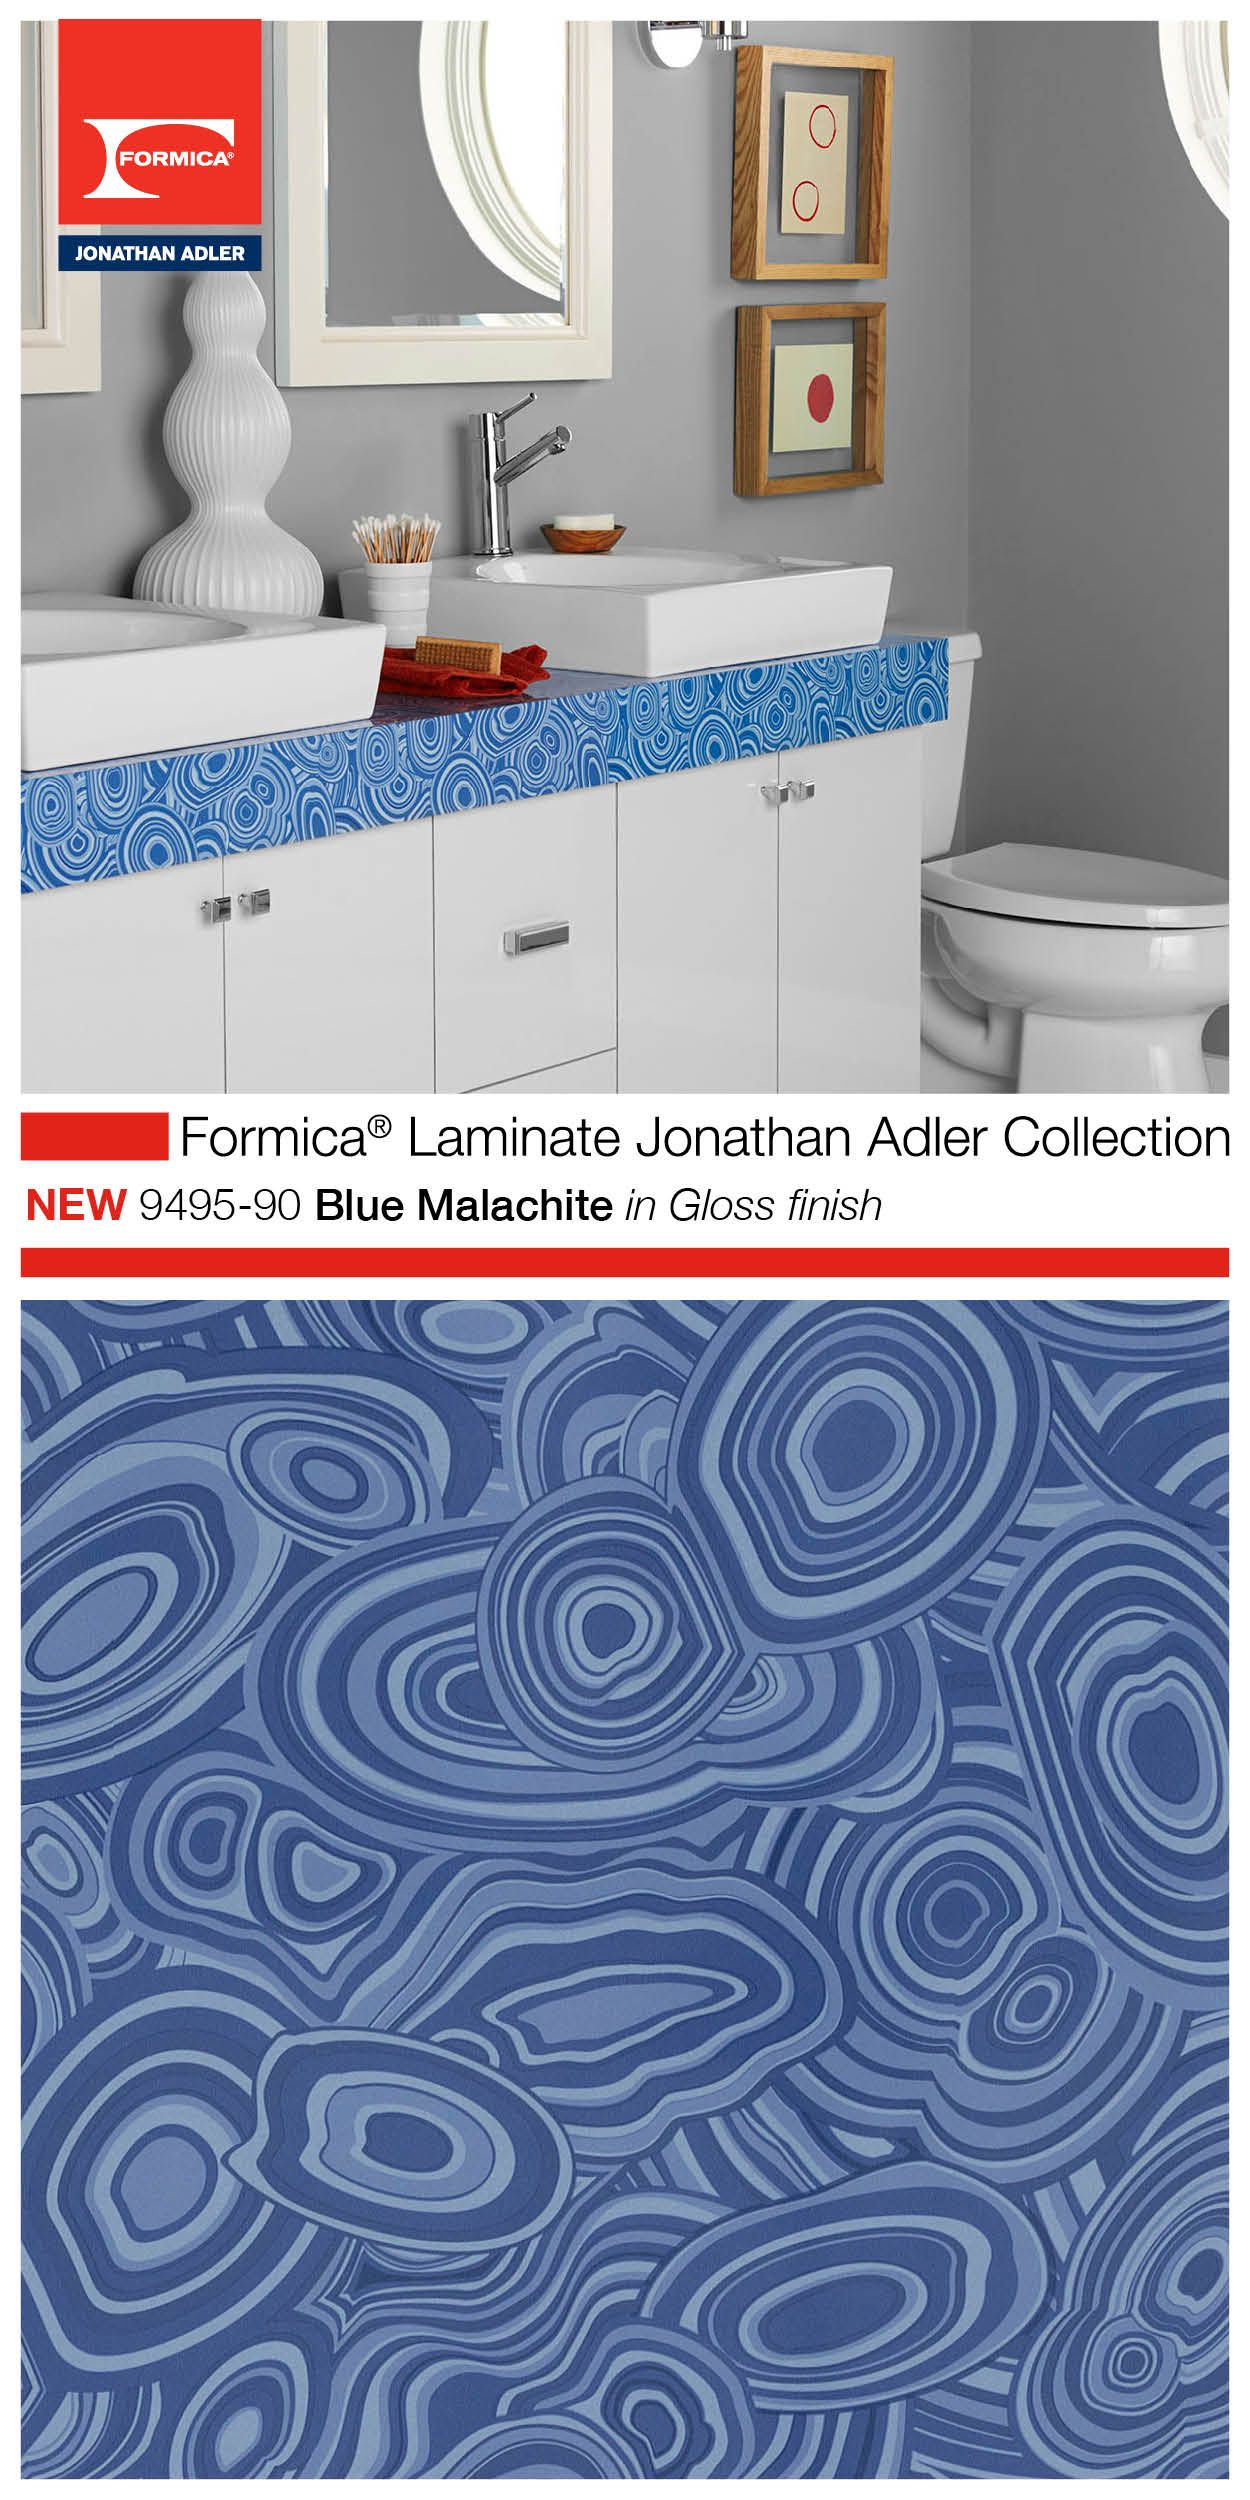 The Highly Aned Formica Laminate Jonathan Adler Collection 9495 90 Blue Malachite In Gloss Finish Looks Great As Part Of A Bathroom Vanity Or Bar